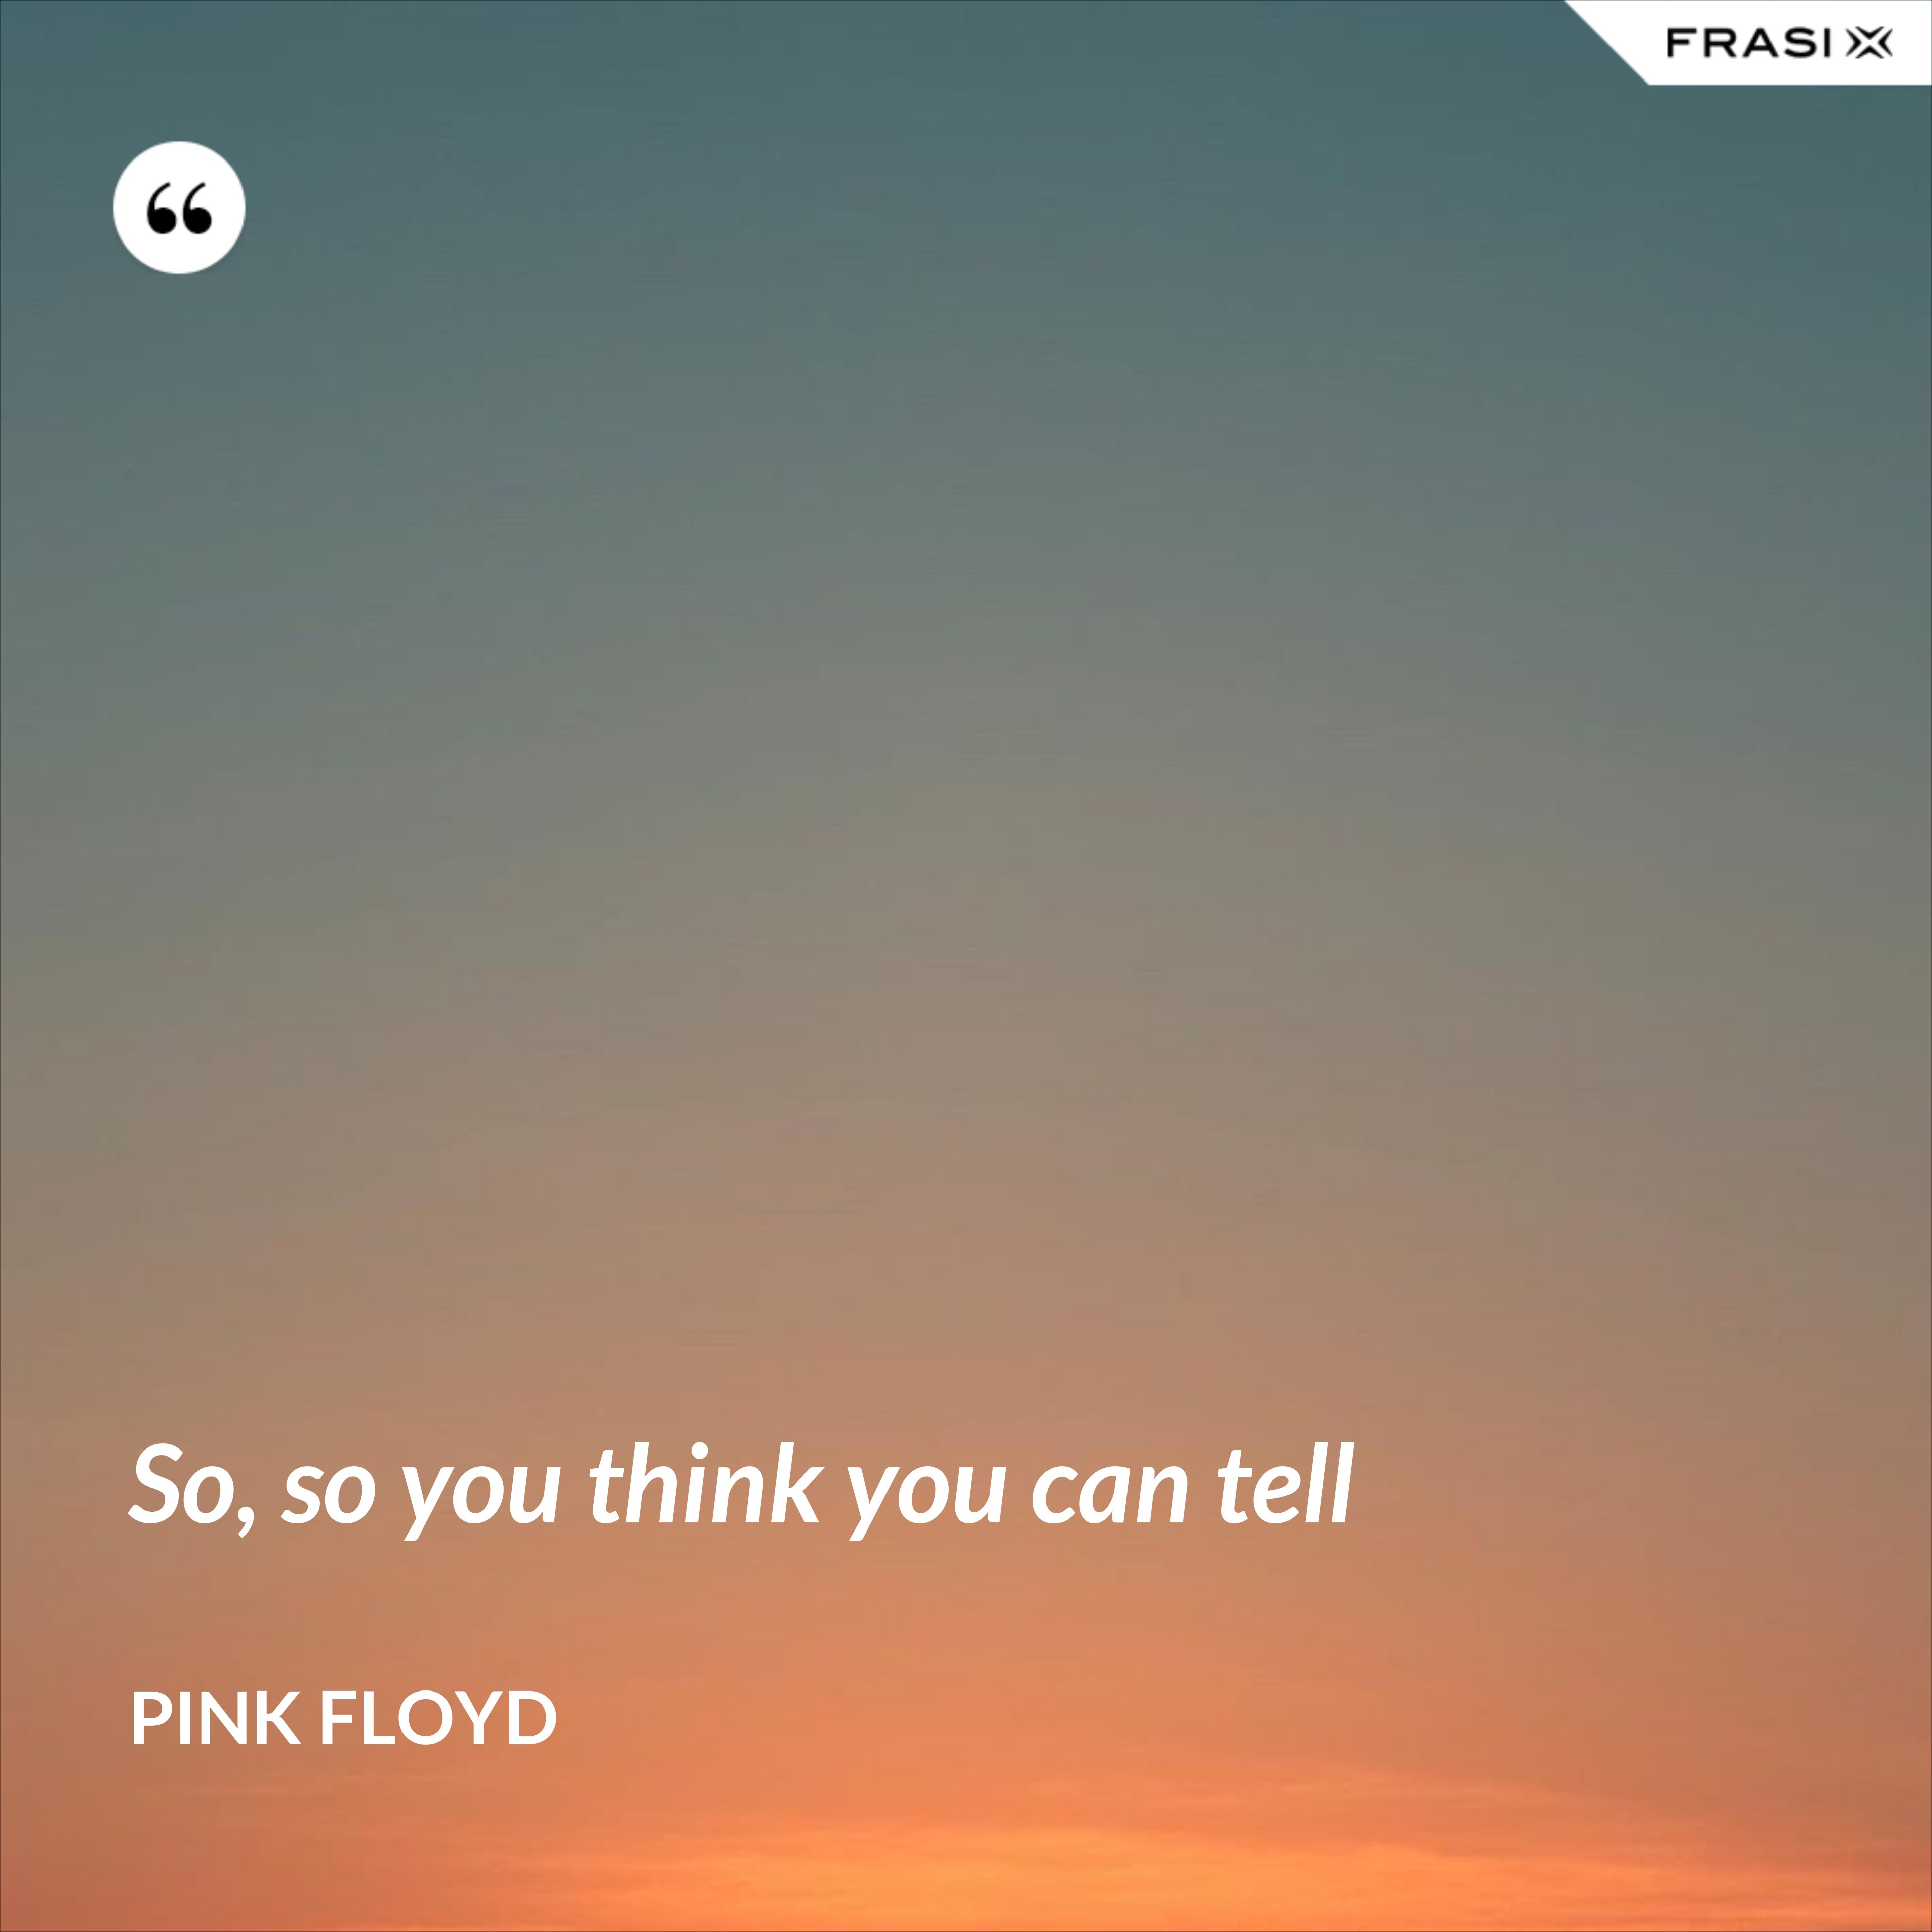 So, so you think you can tell - Pink Floyd